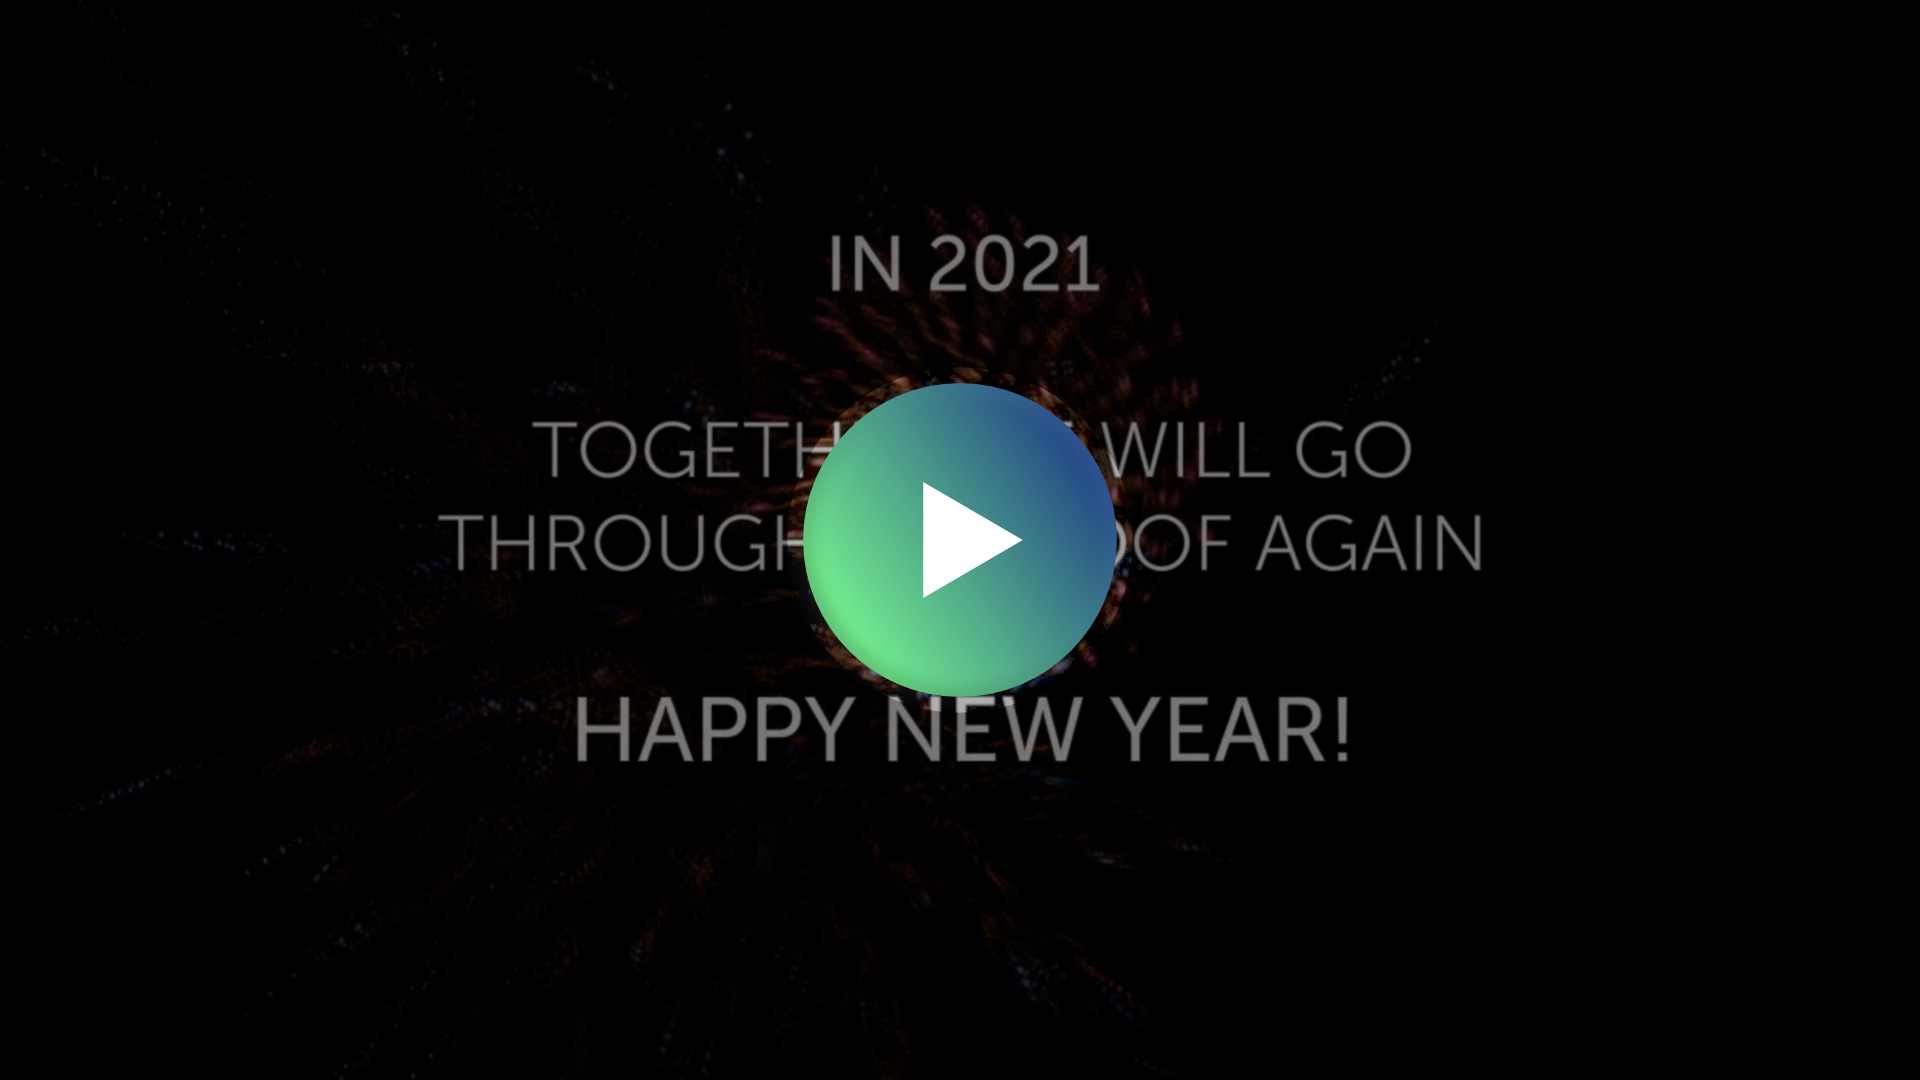 Happy New Year! image